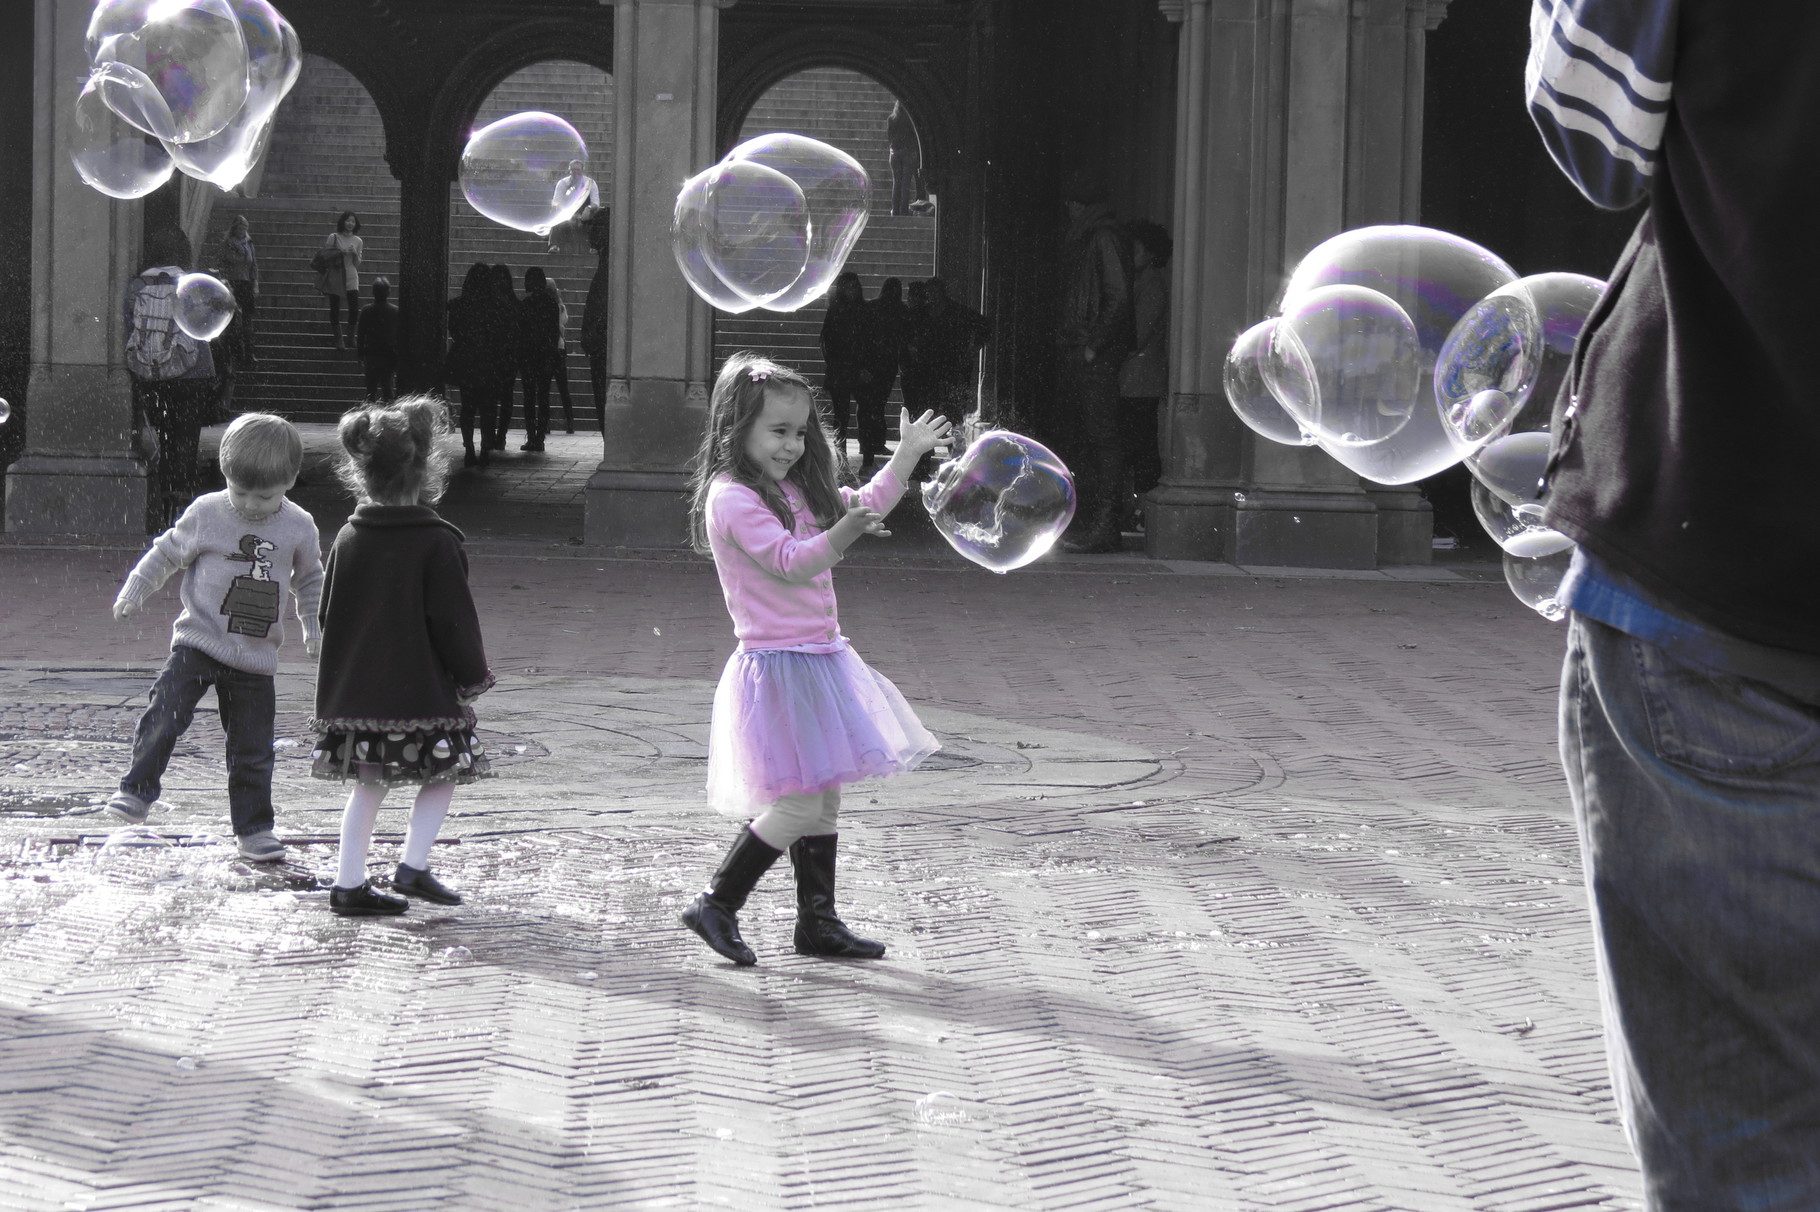 New York, Central Park, Bethesda Terrace - Innocence - little things make life great